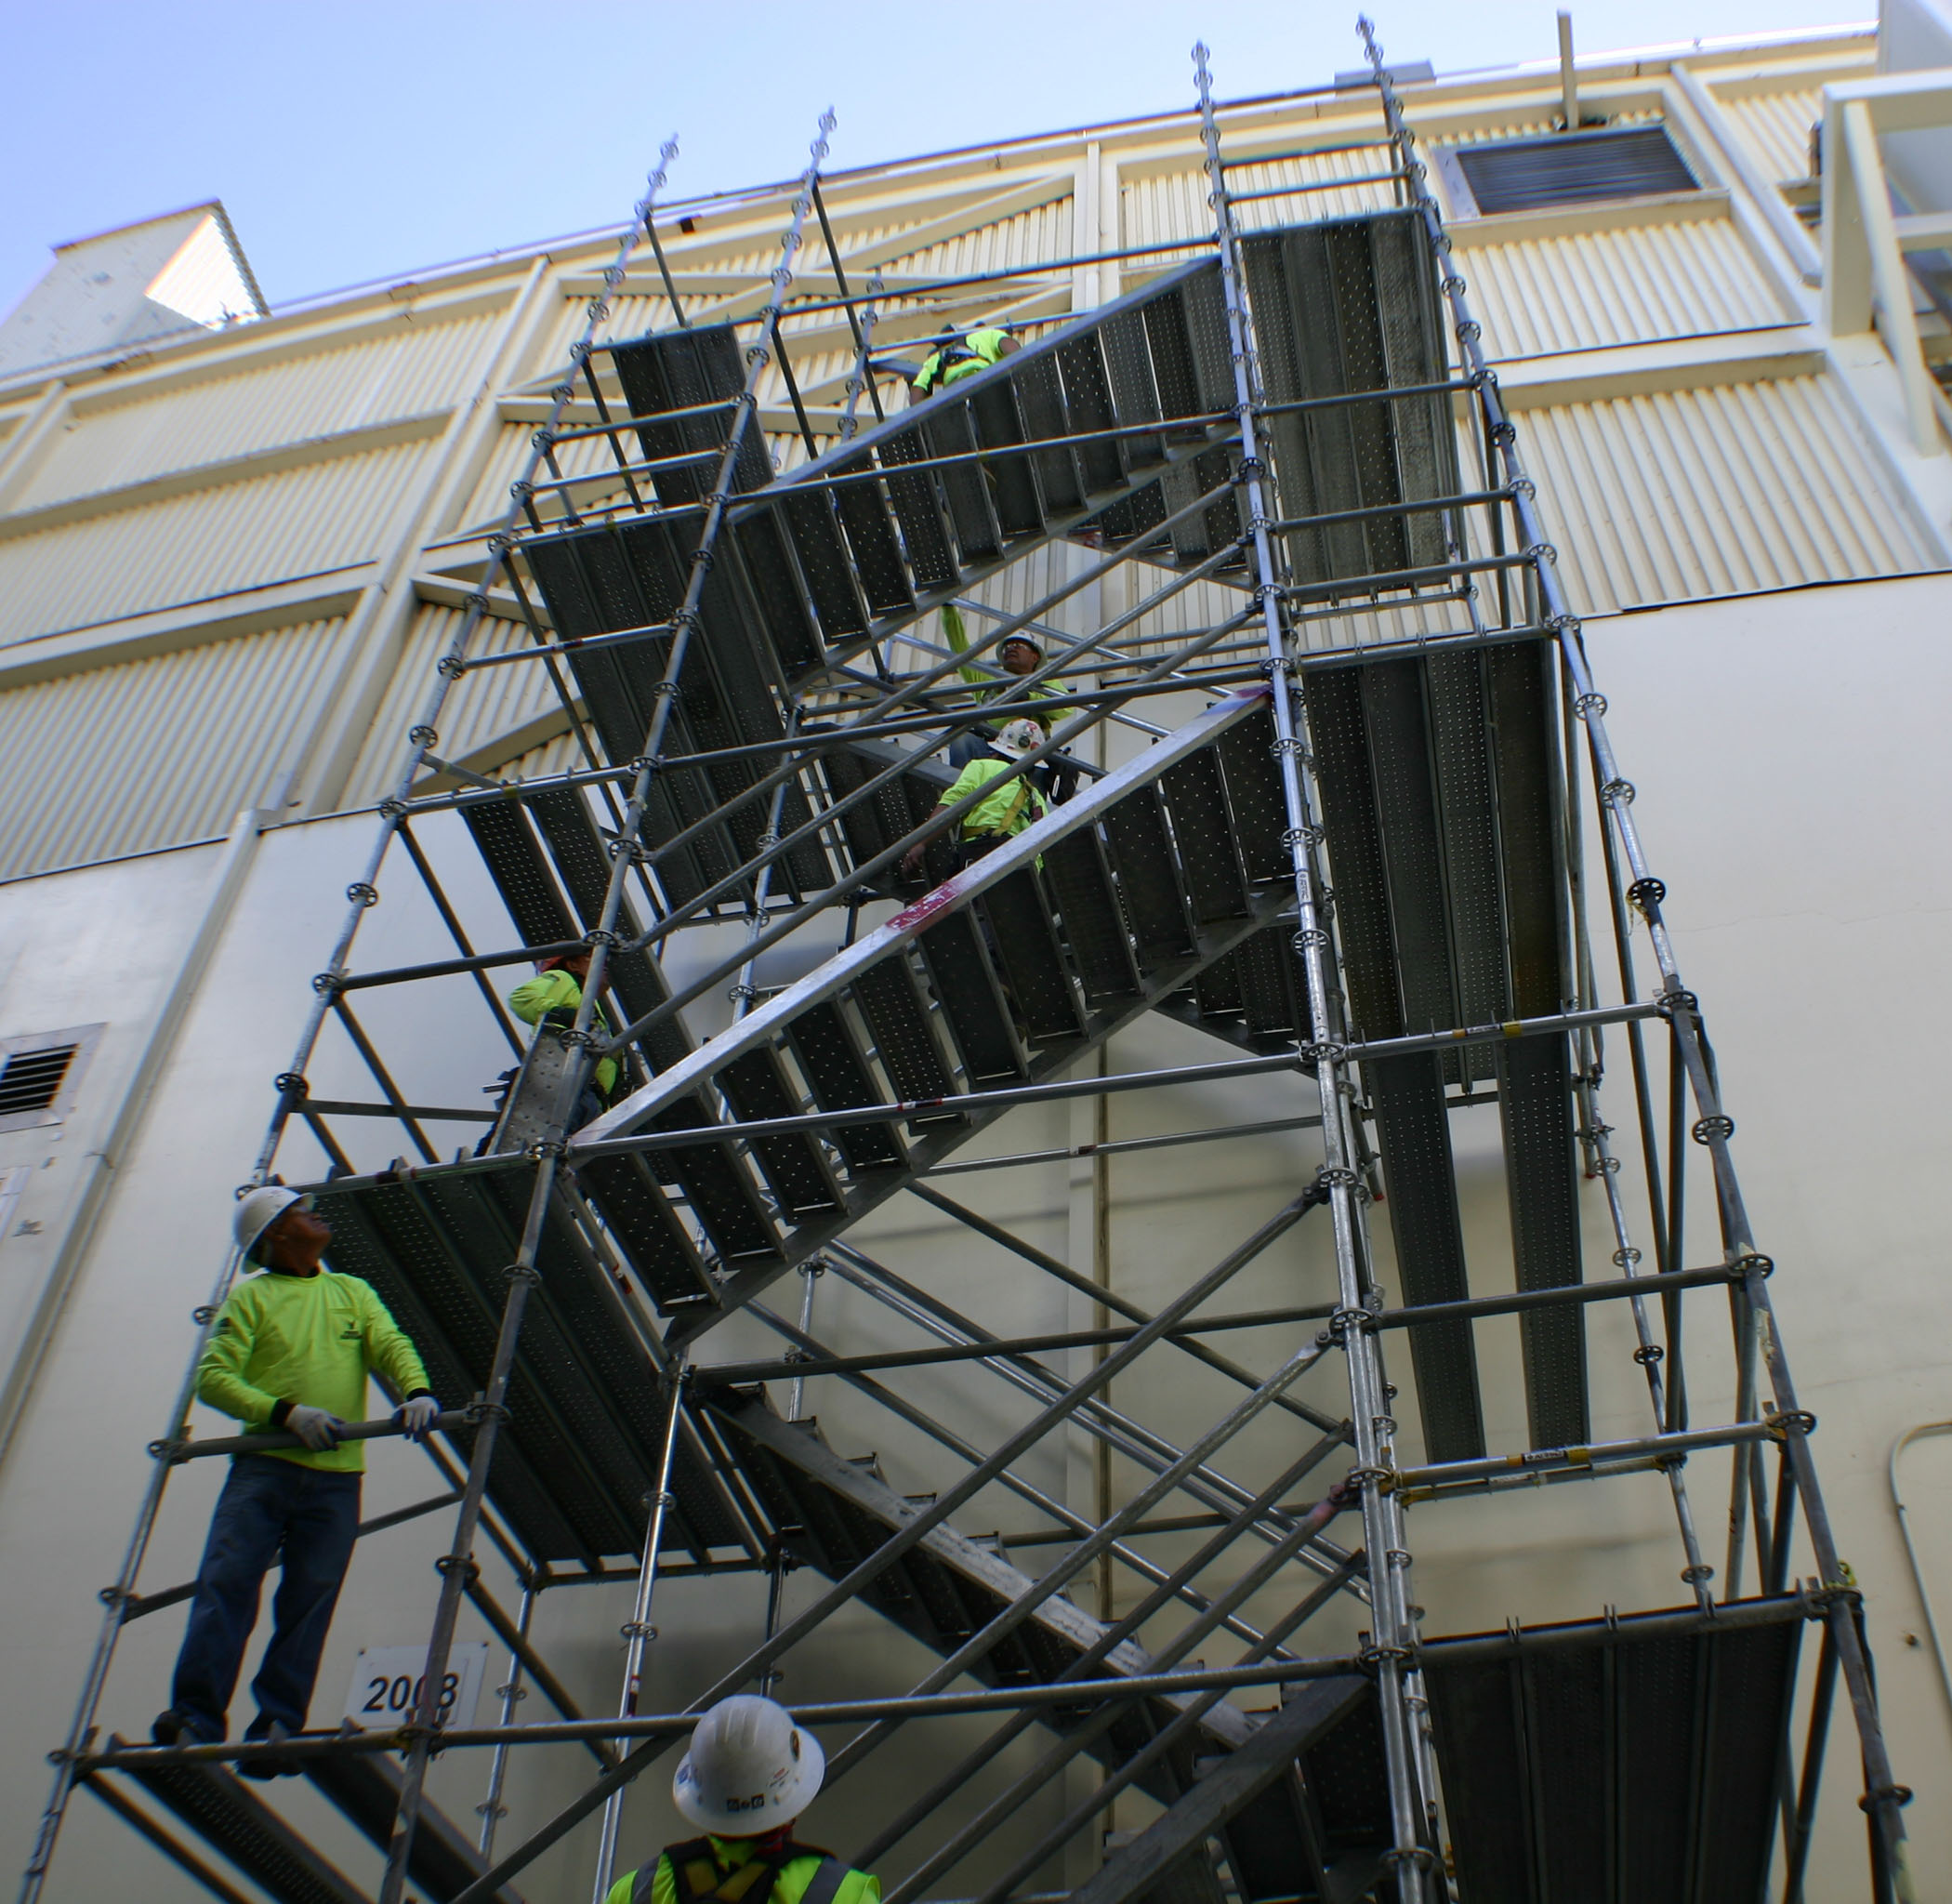 Systems stair tower